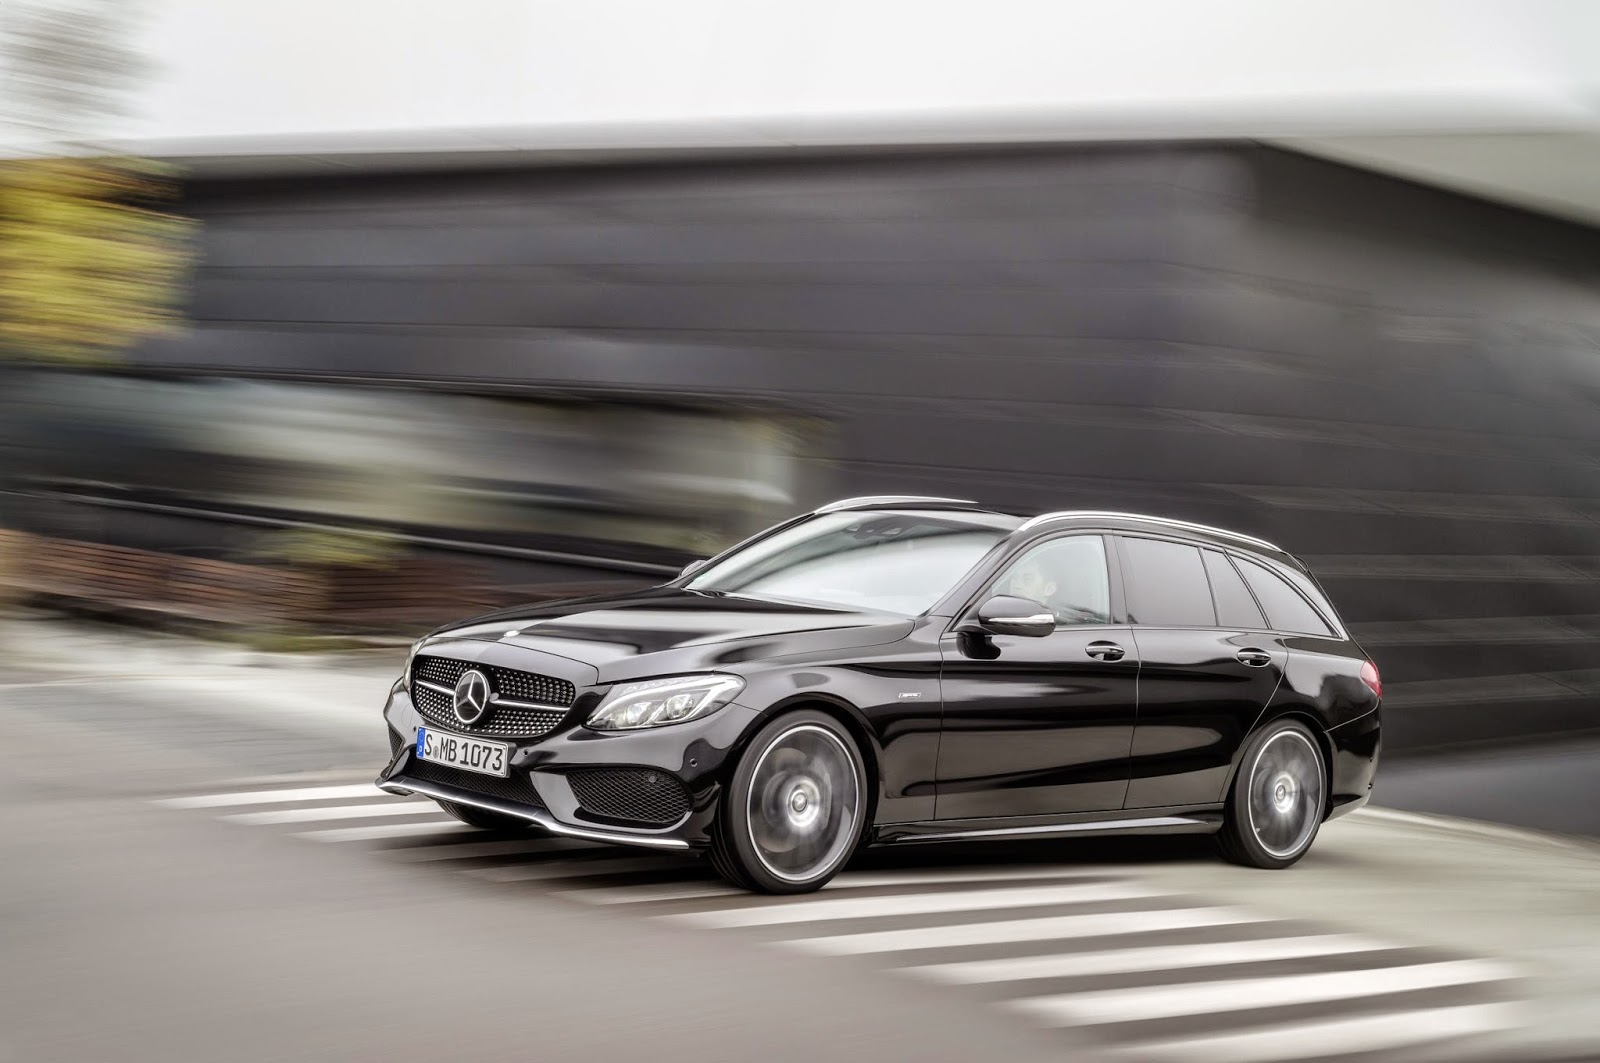 Mercedes Benz C450 AMG moving front angle